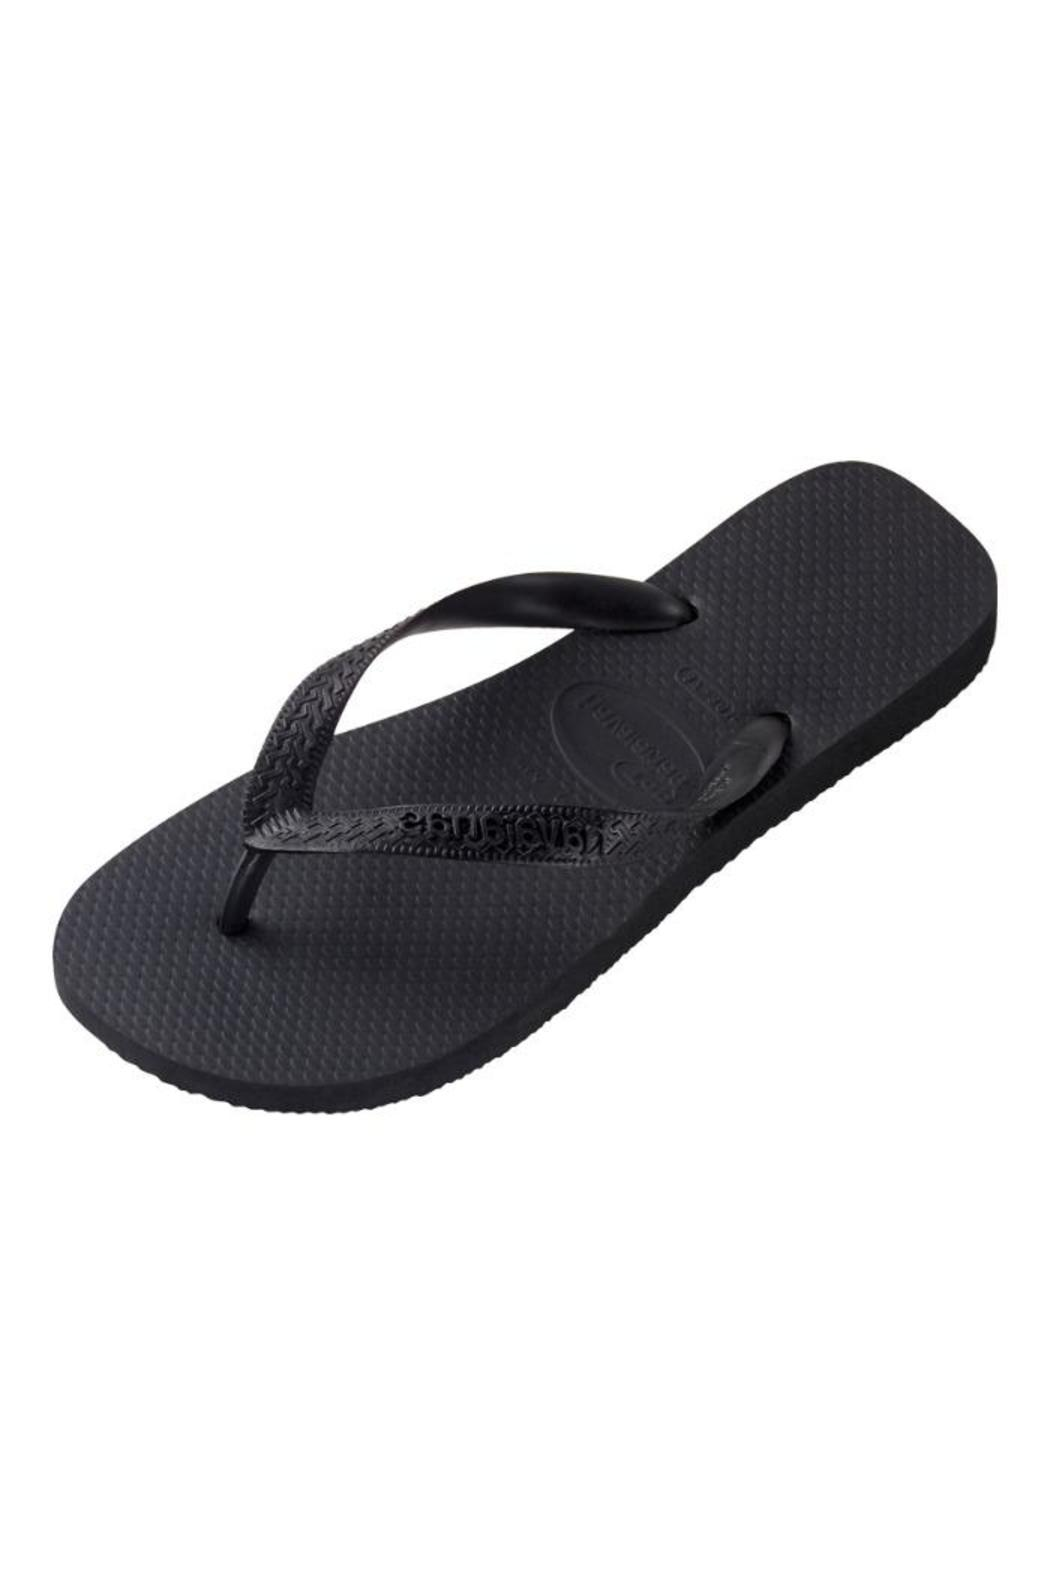 7bfe512b3db17b Havaianas Top Sandal from Tennessee by Lori s Family Footwear ...